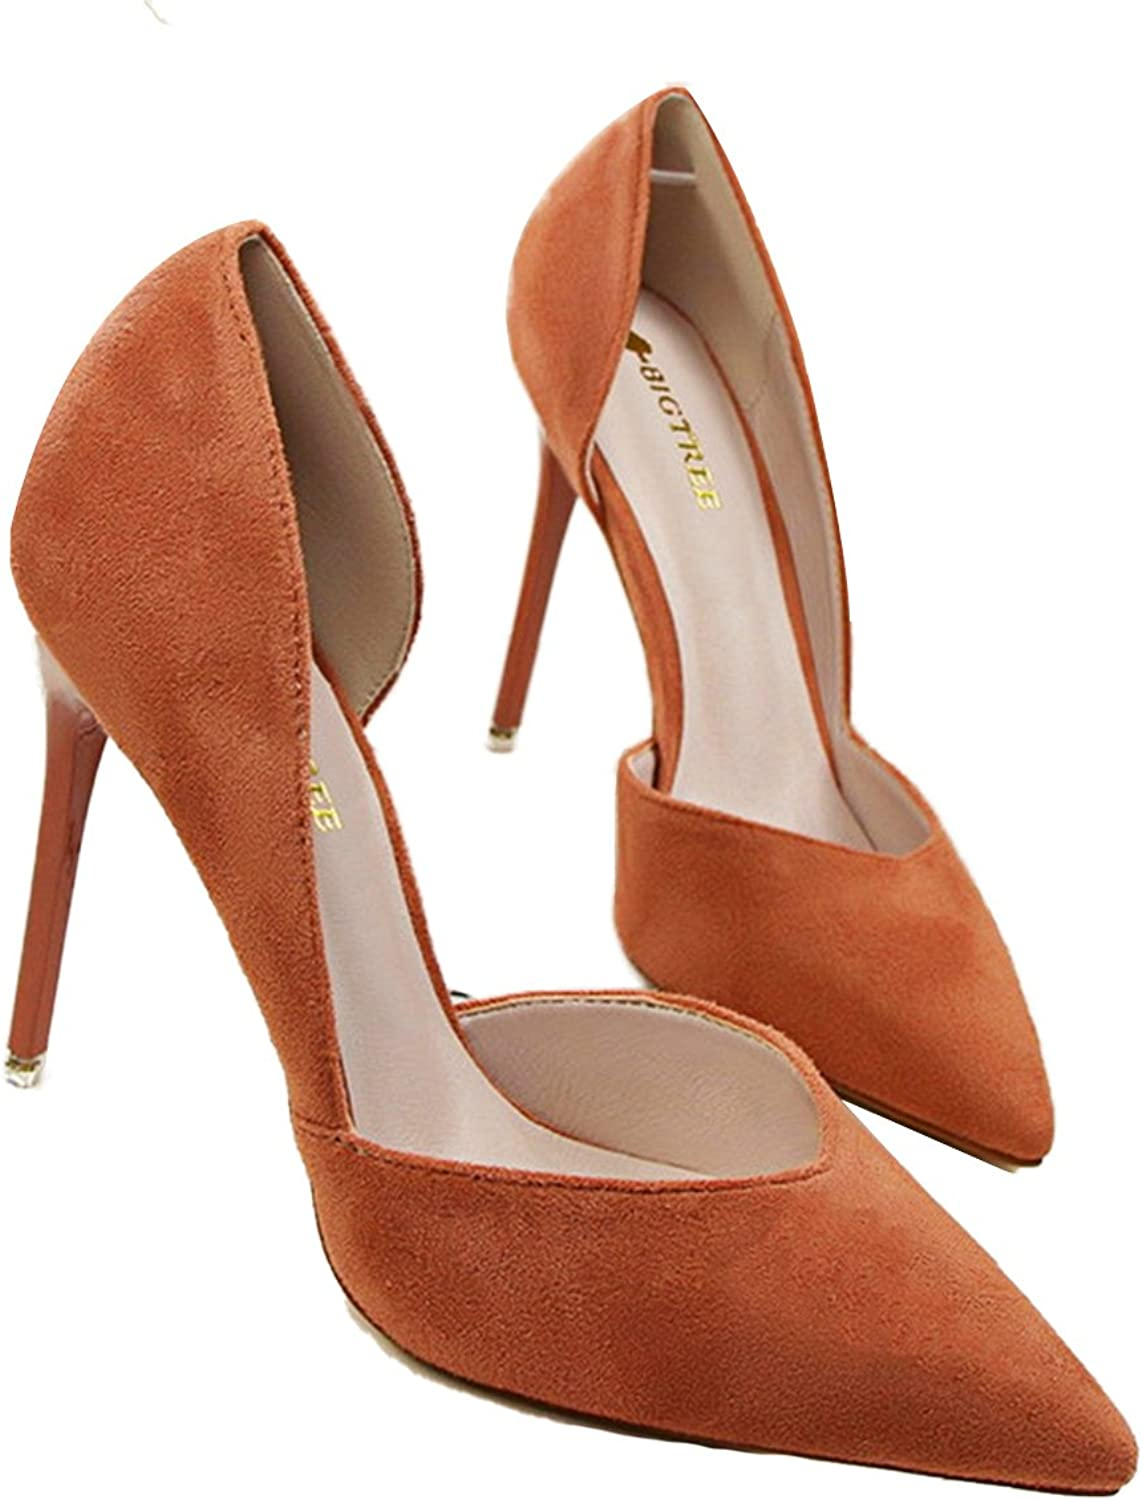 Owen Moll Women Pumps, Sexy Side Cut-Outs Shallow Solid Flock Pointed Toe Sandal shoes